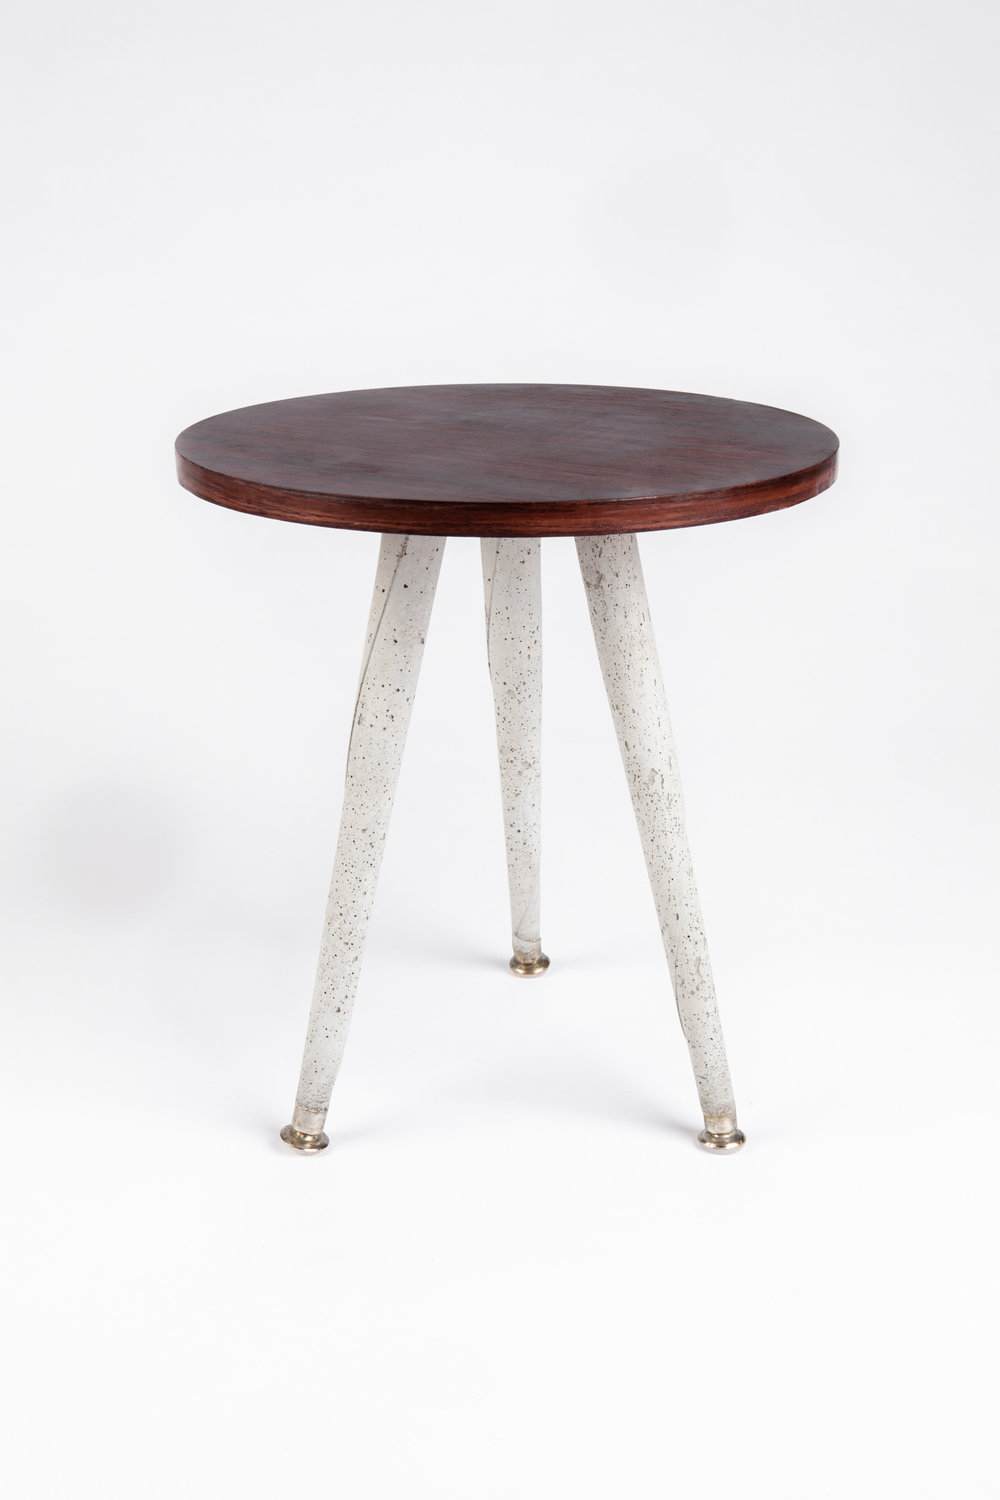 "TA KA TSI KA  rosewood table top, cement legs & steel leg mounts 15"" height x 15"" diameter  This side table is named Ta Ka Tsi Ka, mimicking the sound of Brazilian drums. It looks great on its own and is at its very best when paired with its mirror image (the Ka Tsi Ka Ta side table). The concrete legs of Ta Ka Tsi Ka are unexpected, while the smooth, soft texture of Ka Tsi Ka Ta's top clashes with its seemingly rough surface."